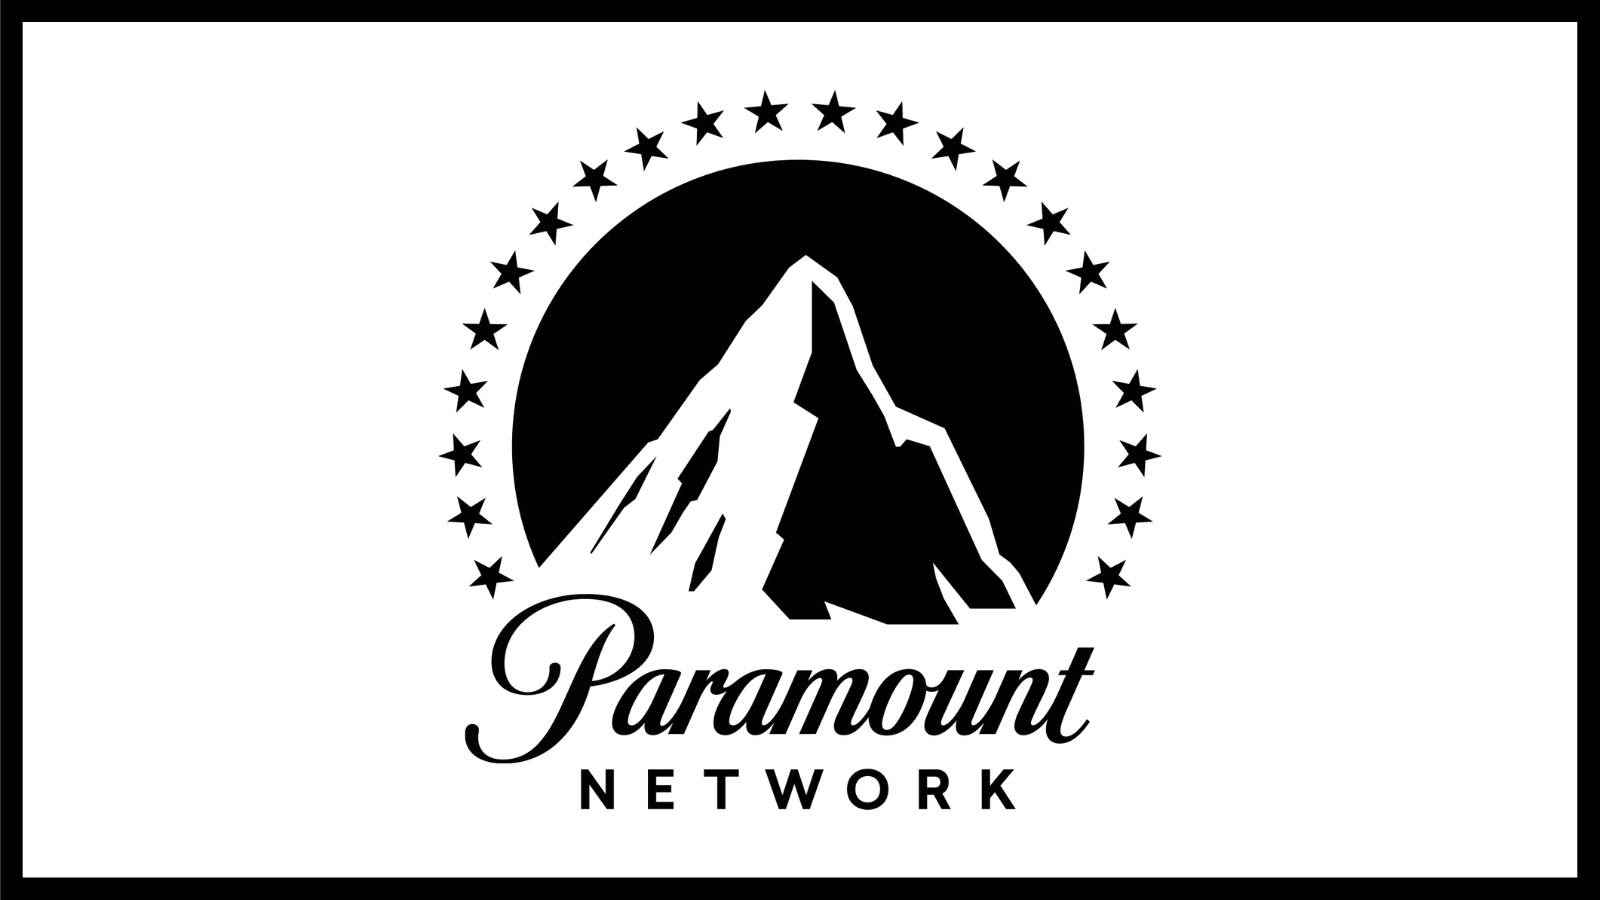 How to Watch Paramount Network Without Cable: Best Movies Online